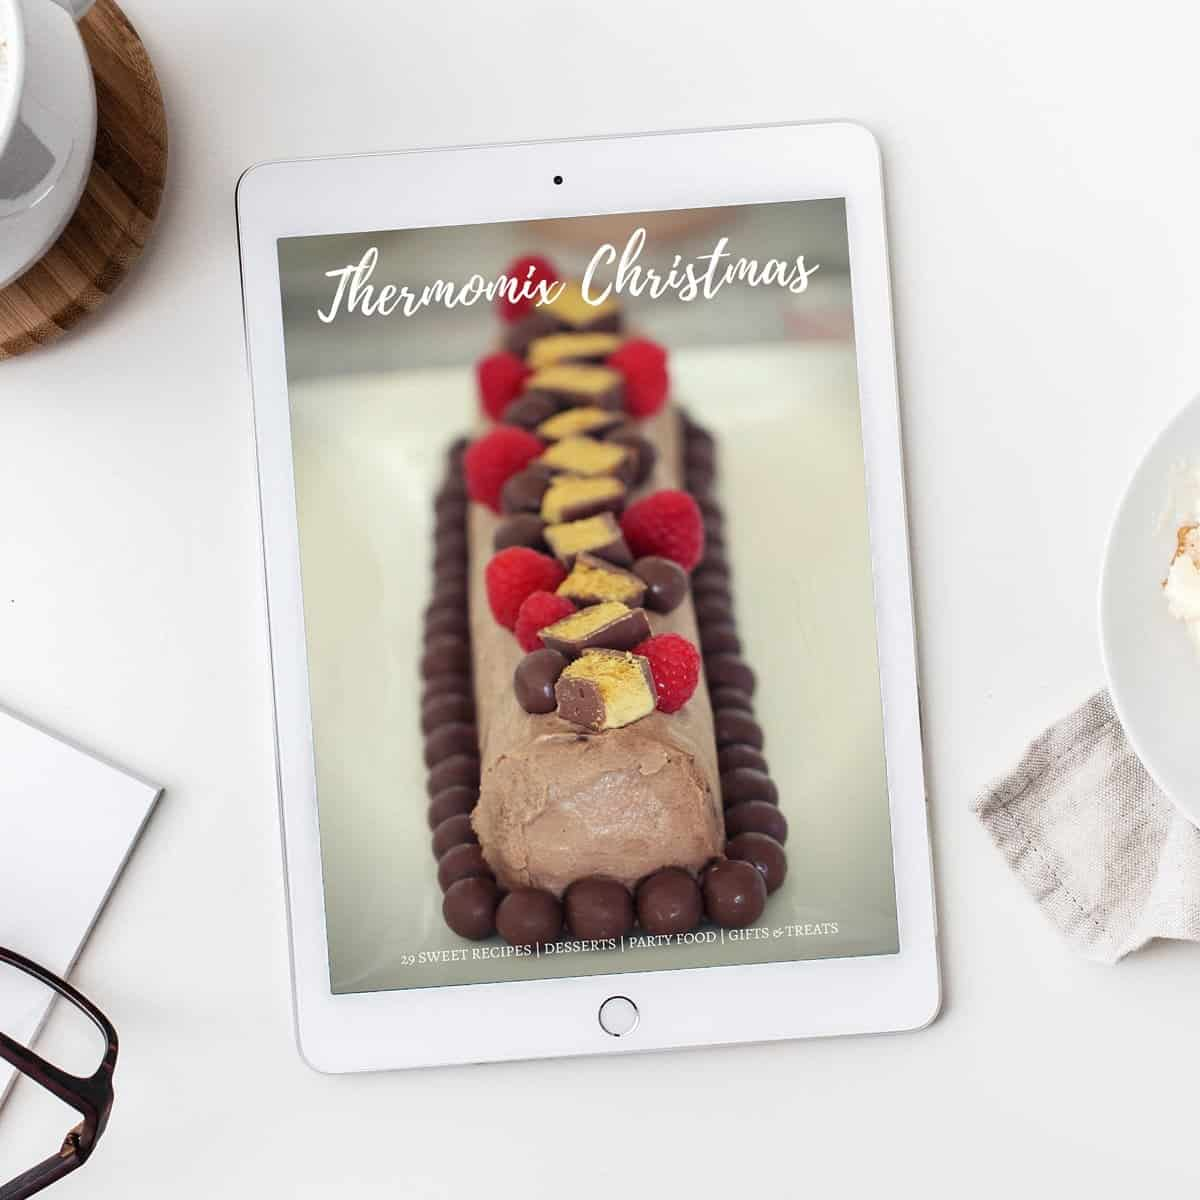 Thermomix Christmas eBook